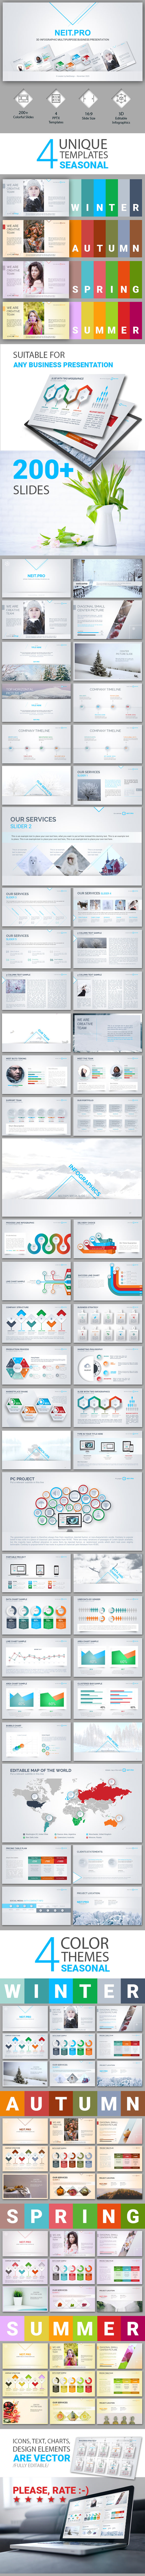 GraphicRiver Neit.Pro 3D Infographic Multipurpose Business Presentation Template 21080901